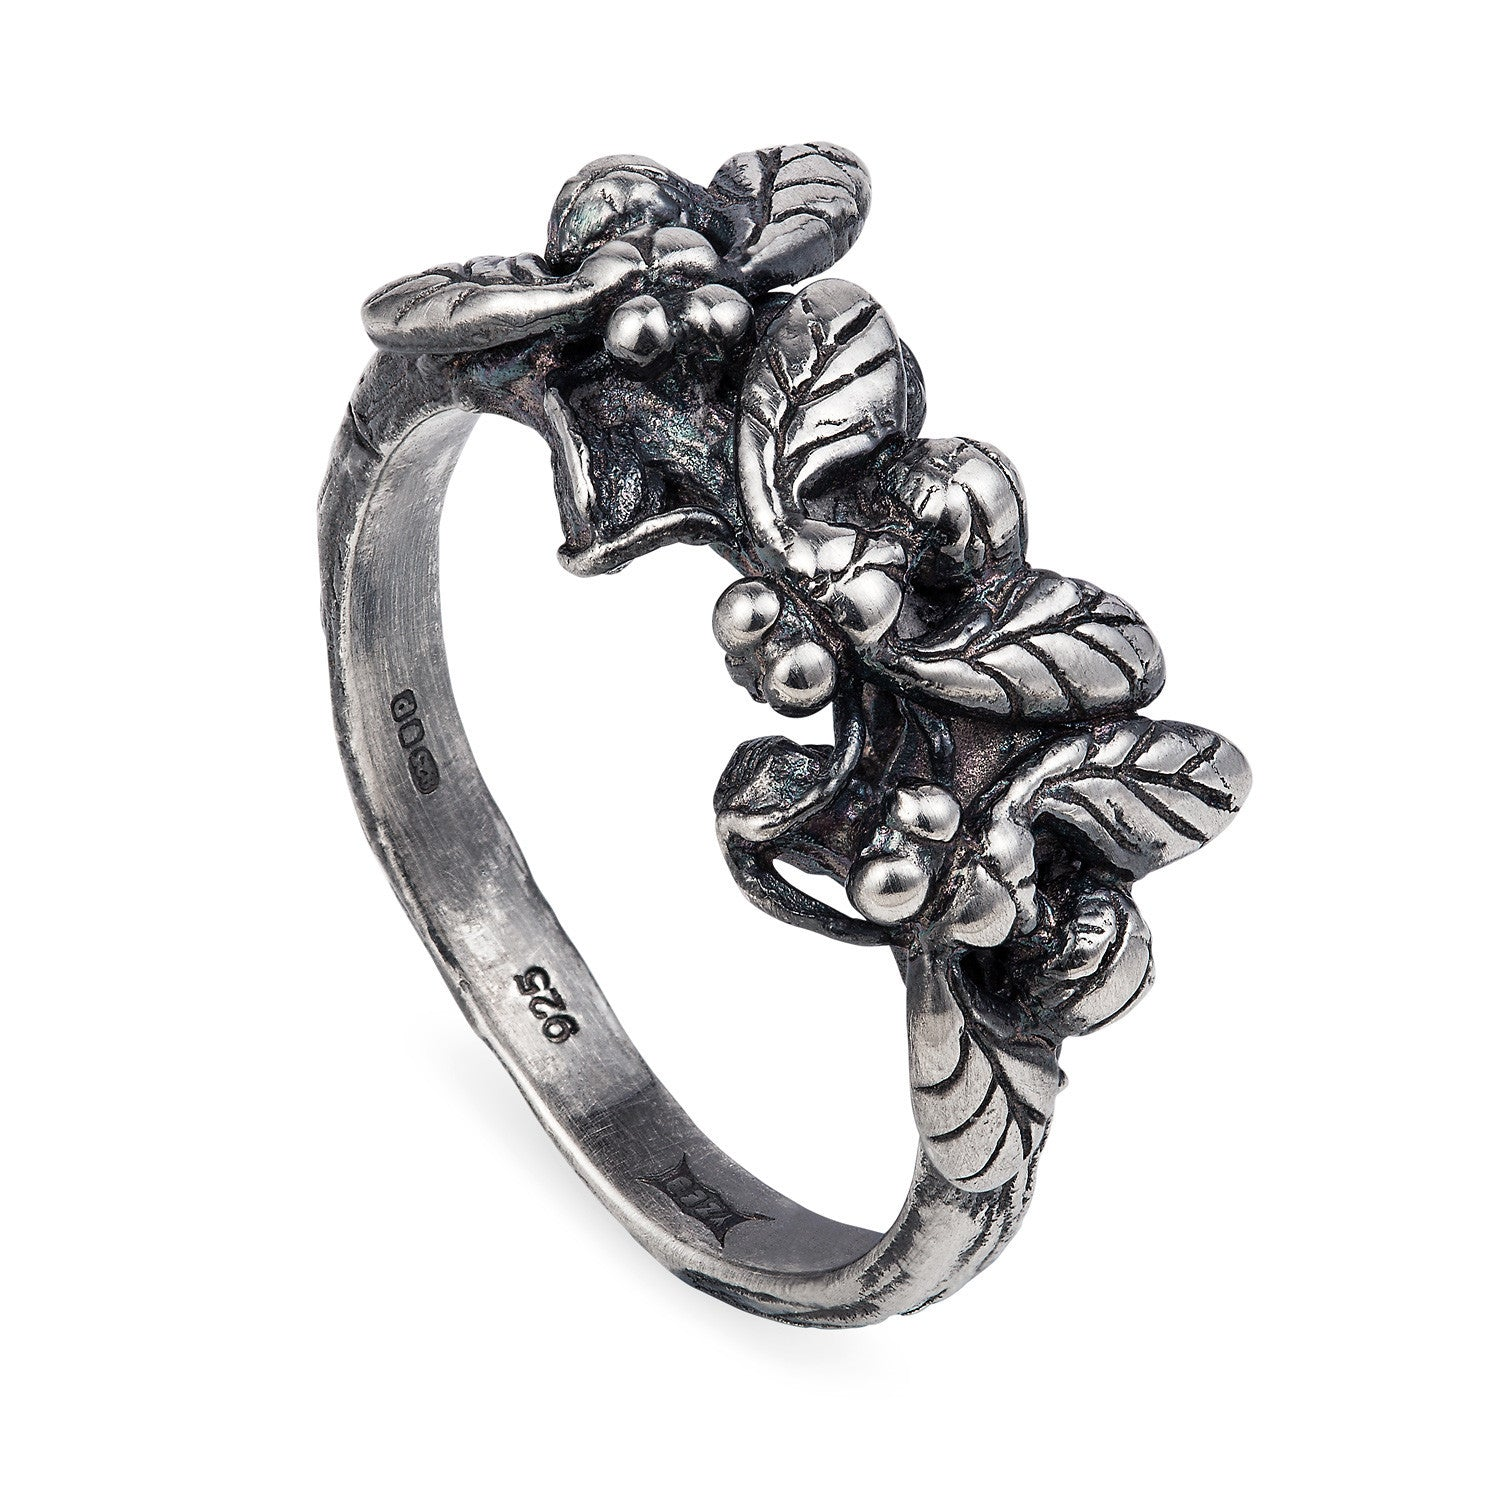 Dark Silver Three Fly Swarm Ring